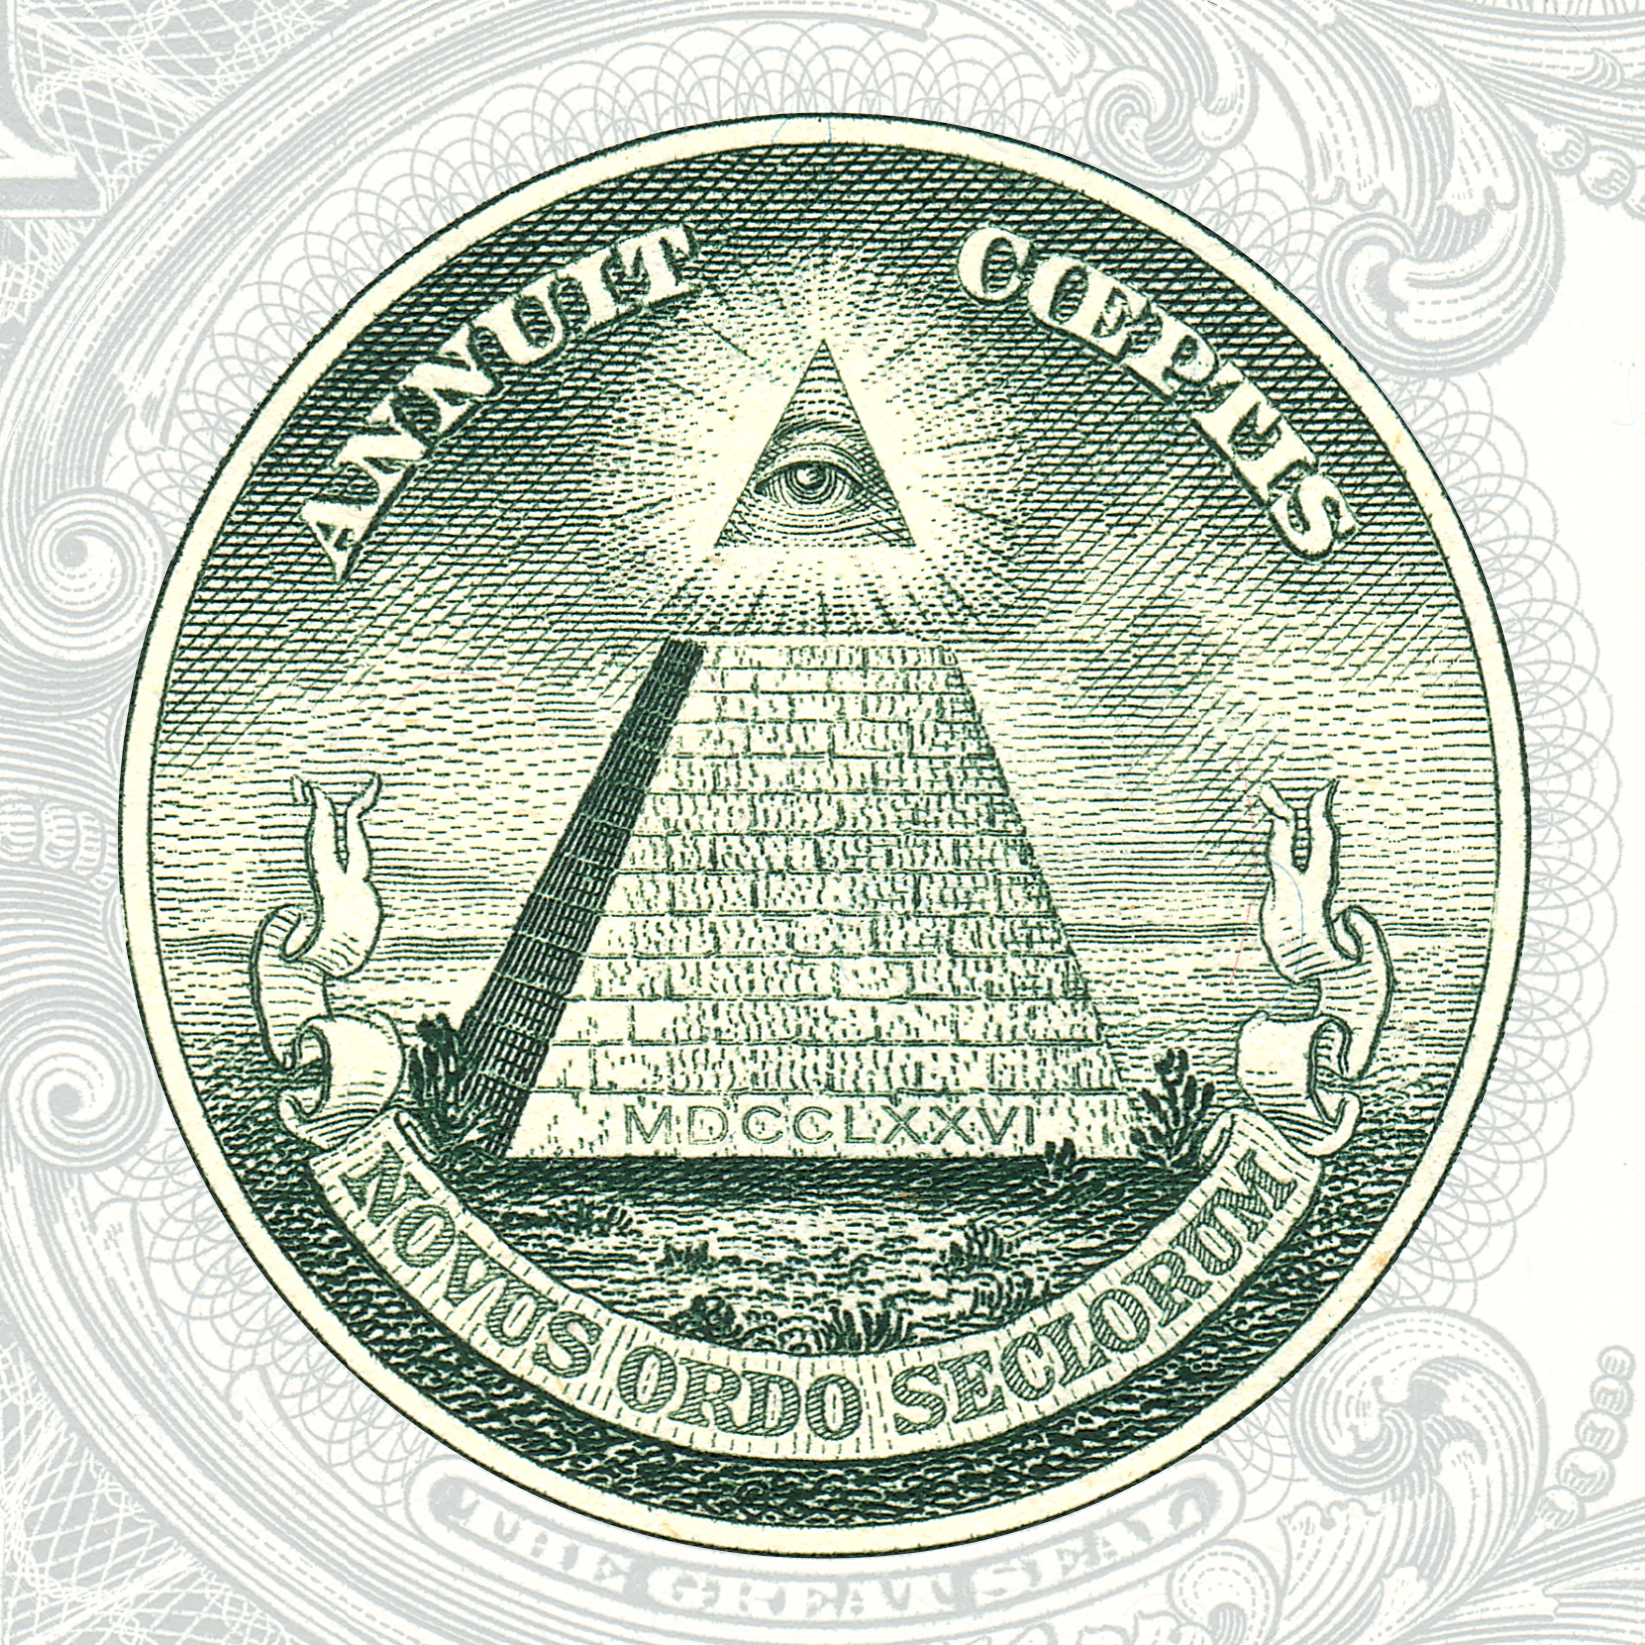 https://upload.wikimedia.org/wikipedia/commons/3/3d/Dollarnote_siegel_hq.jpg